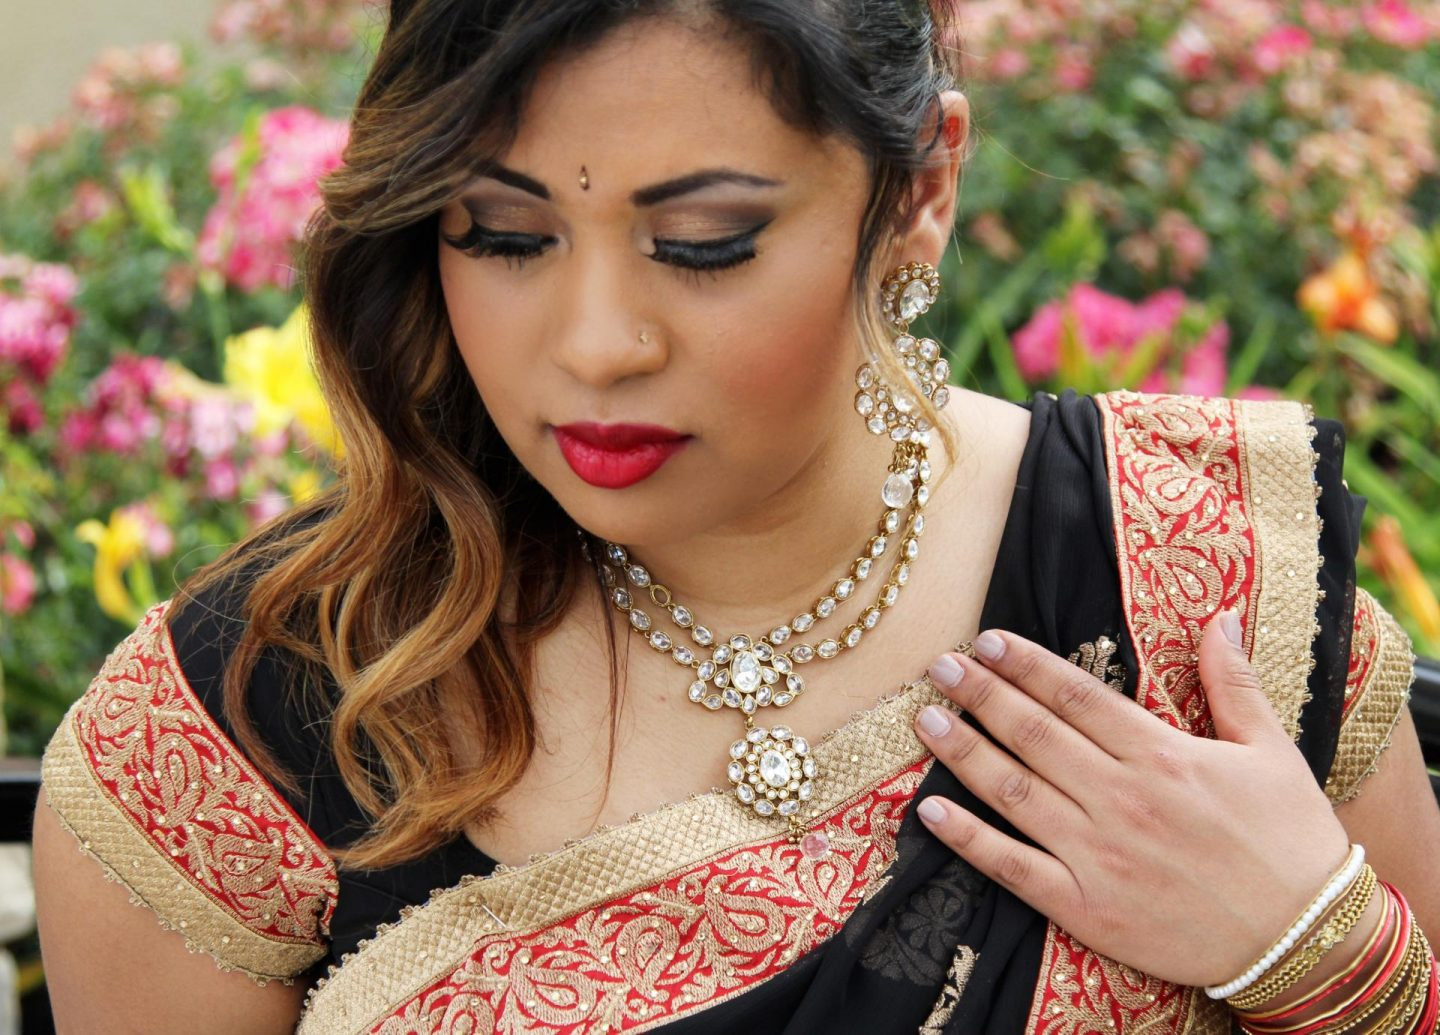 Indian Wedding Day 4 | Hindu Ceremony Outfit